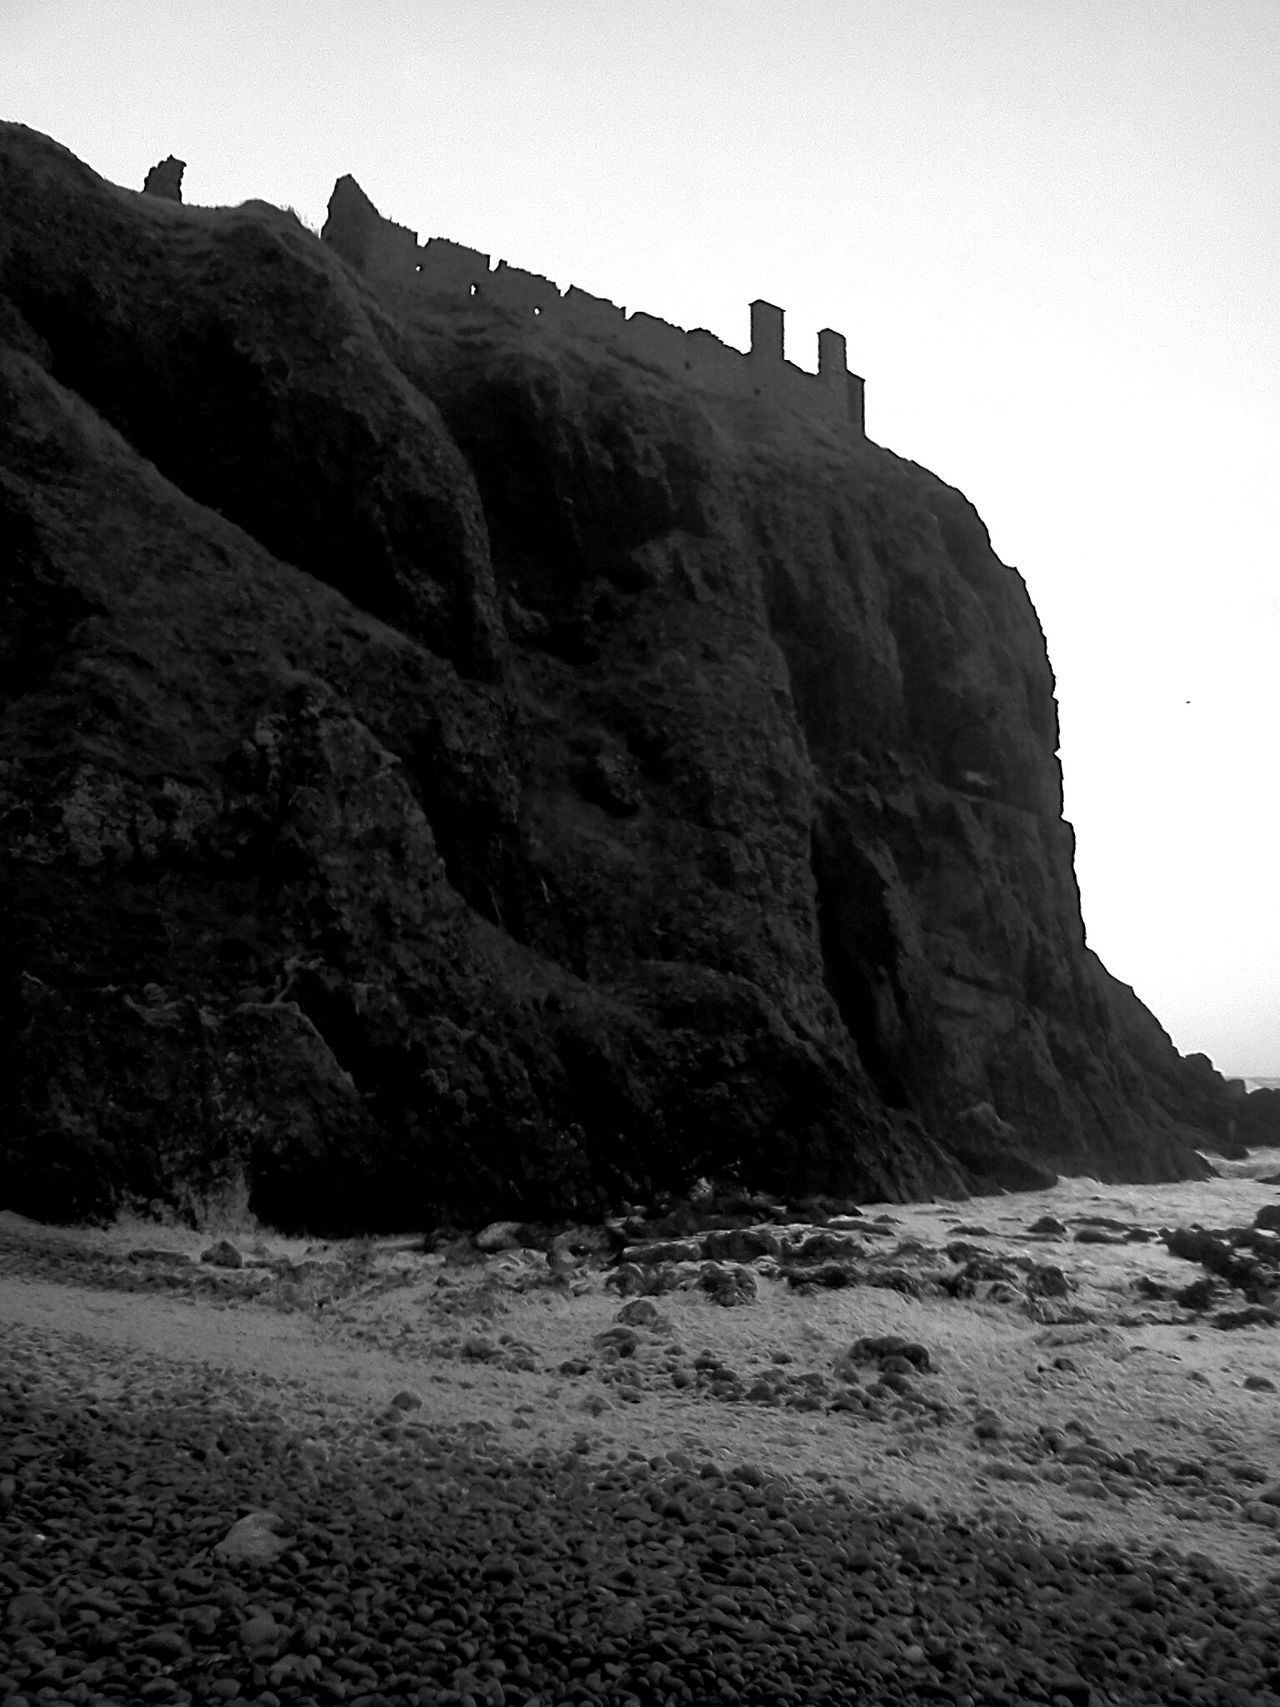 Scotlandlover Scotland Cliff Scottish Castle EyeEm Gallery Cliffs Eyeem Scotland  Black And White Photography EyeEm Travel Photography Blackandwhite Photography Eyeem Black And White From My Point Of View Blackandwhite EyeEm Nature Photography EyeEm Nature Lover Castle Traveling Scottish Beaches Beach Photography Nature_collection Nature Black And White Blackandwhitephotography Travel Photography Eye4photography